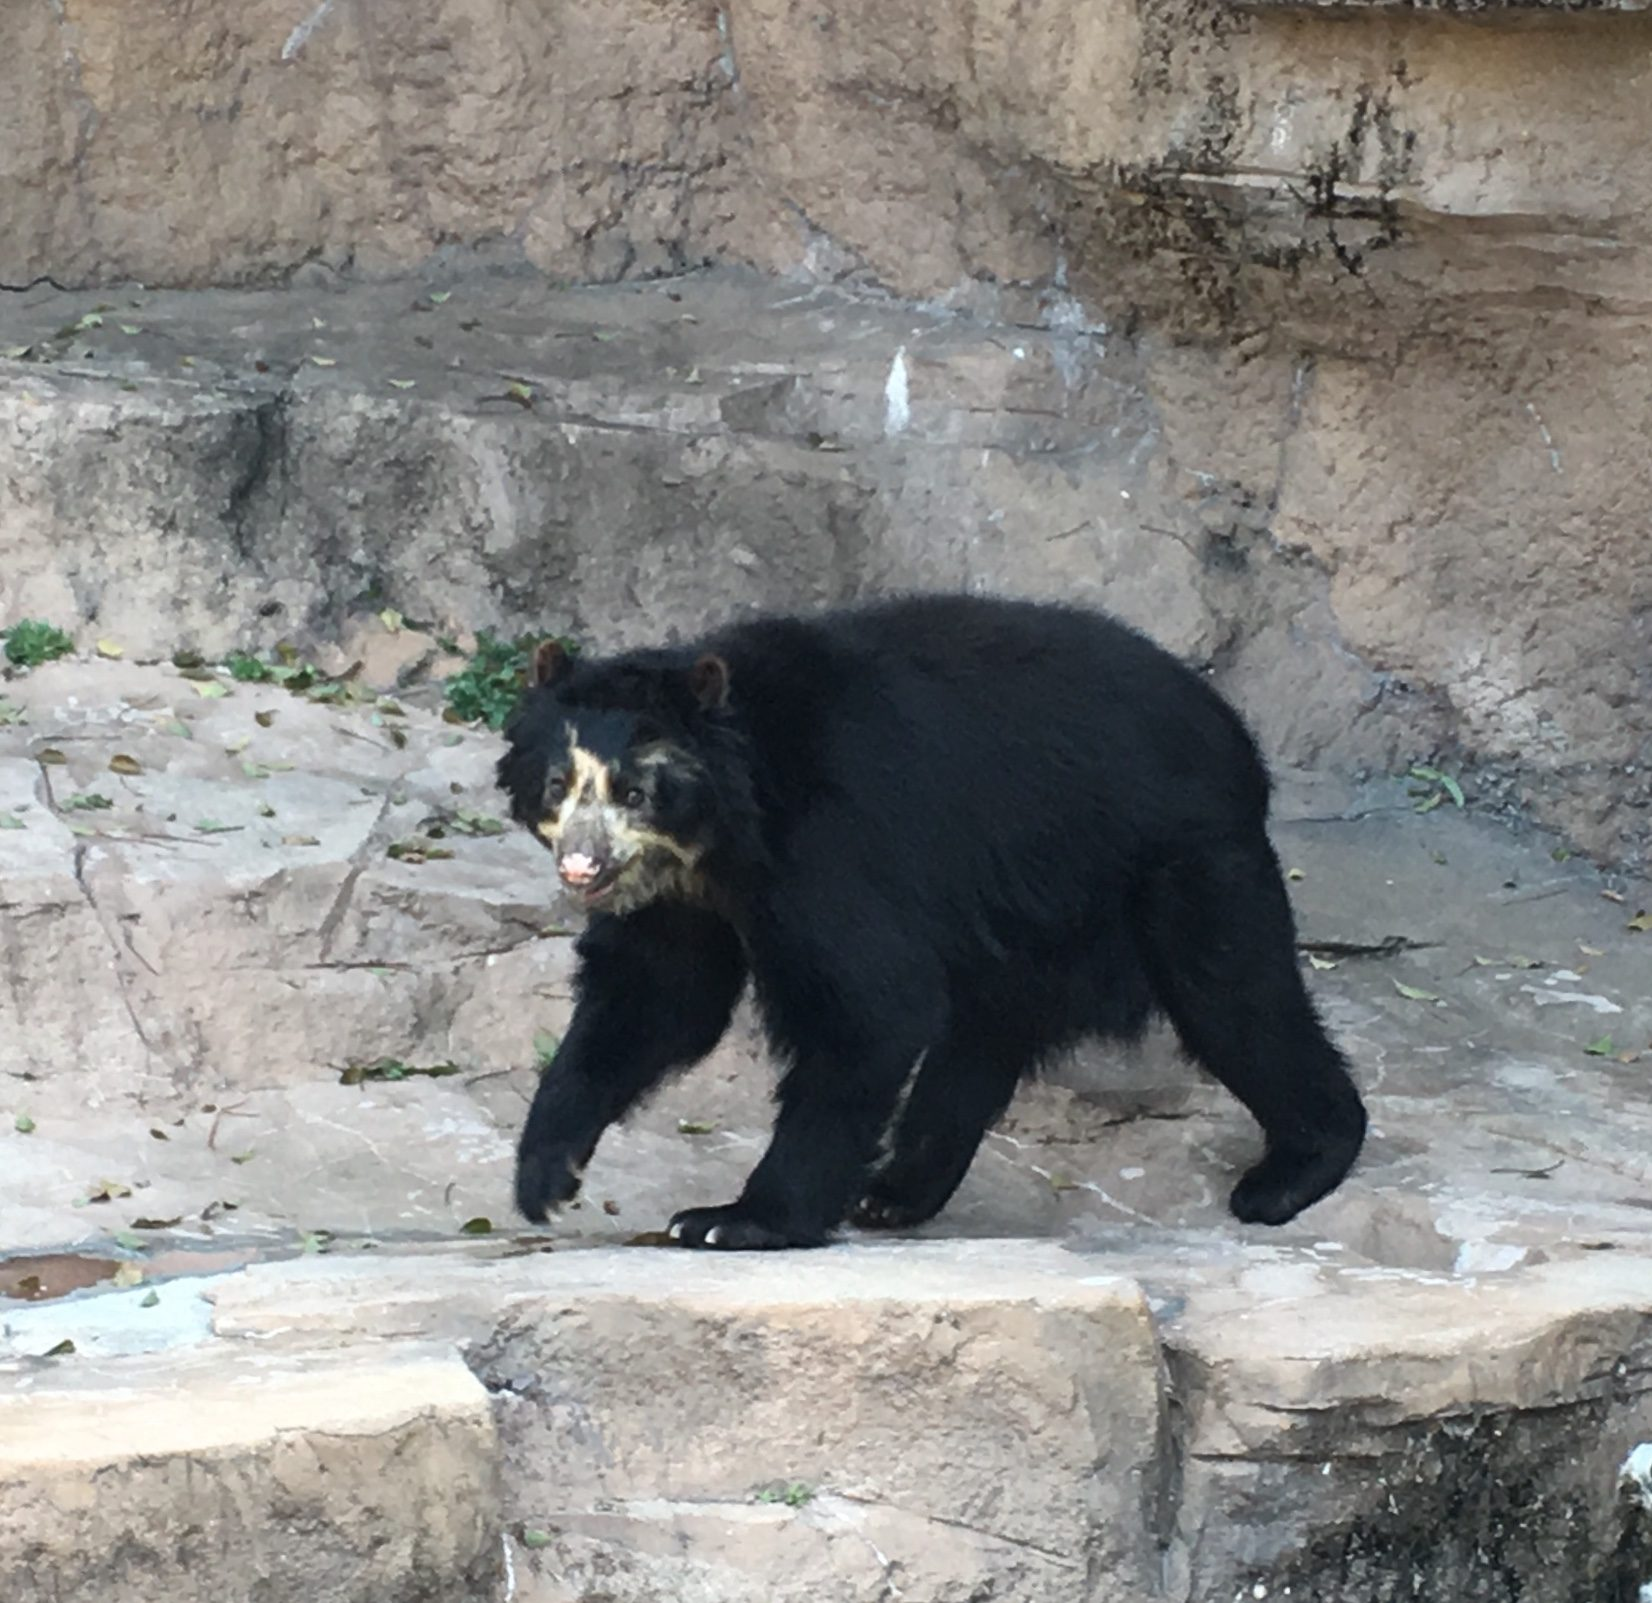 black bear in rocky enclosure at Tennoji Zoo